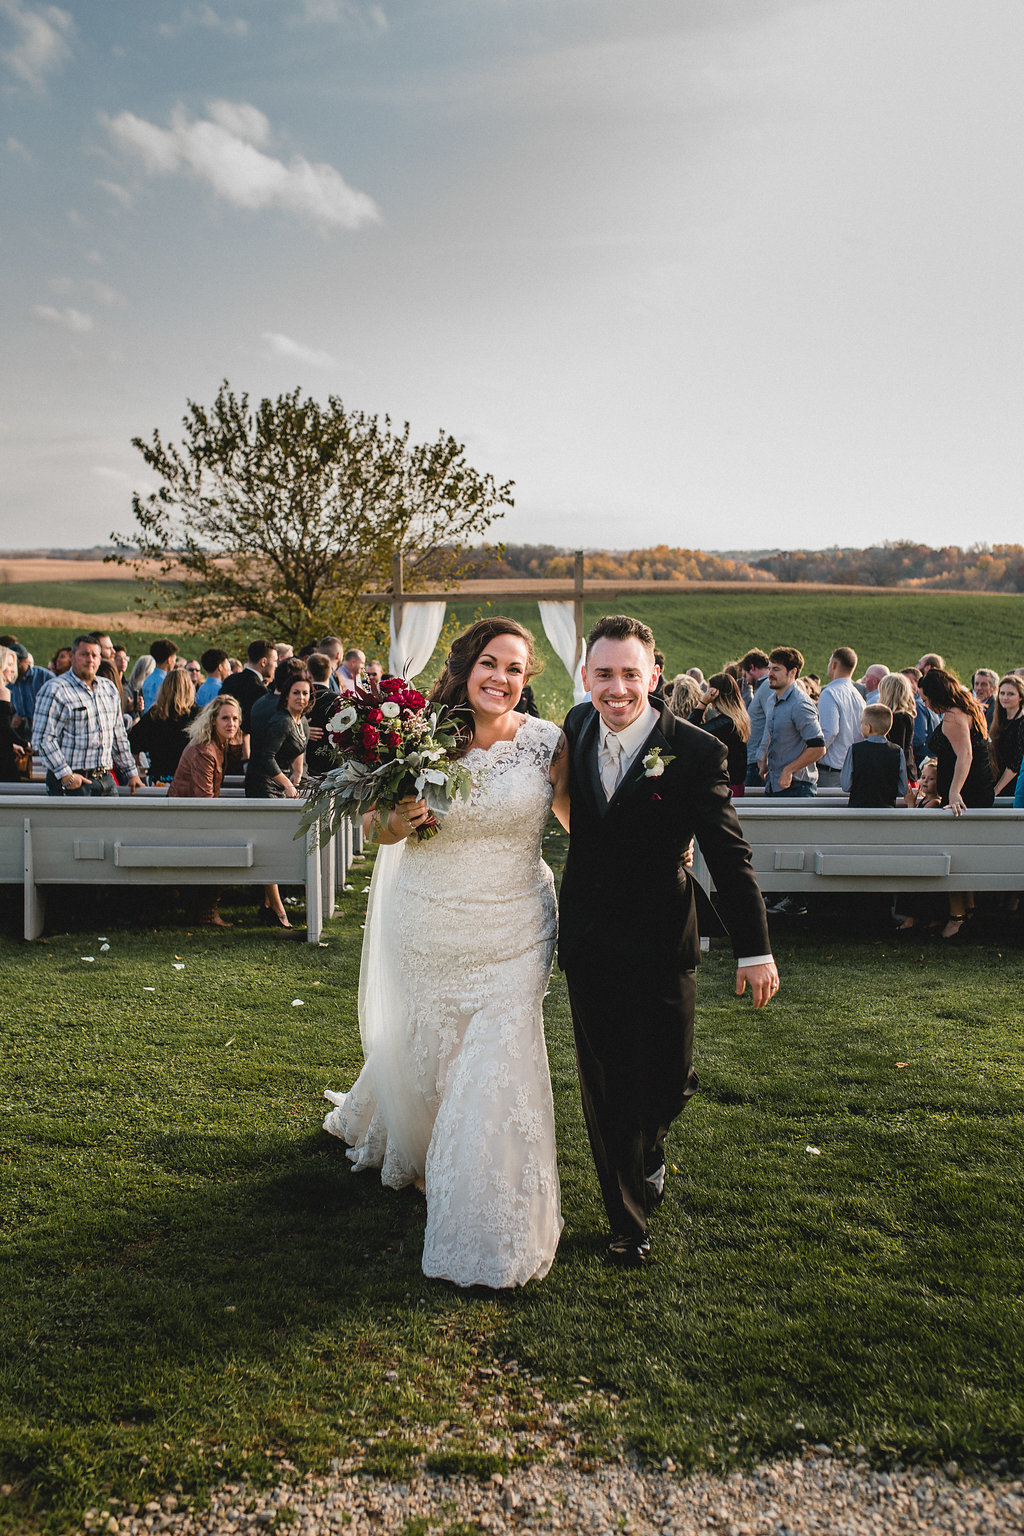 Leslee + Billy | Aqua Fox Photography | Legacy Hill Farm | just married photo at the end of the aisle